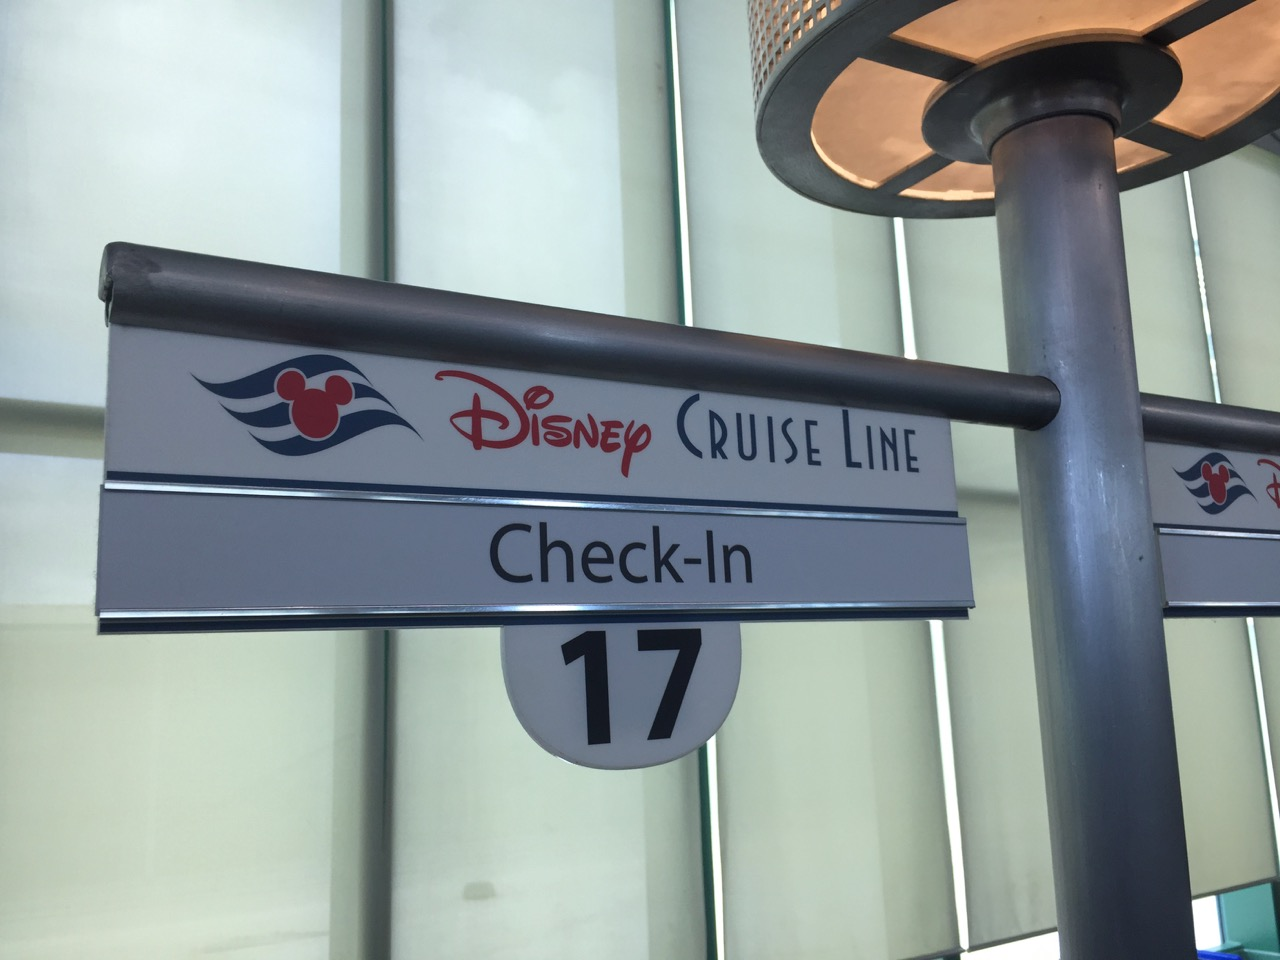 Disney Cruise Line Check-In Sign